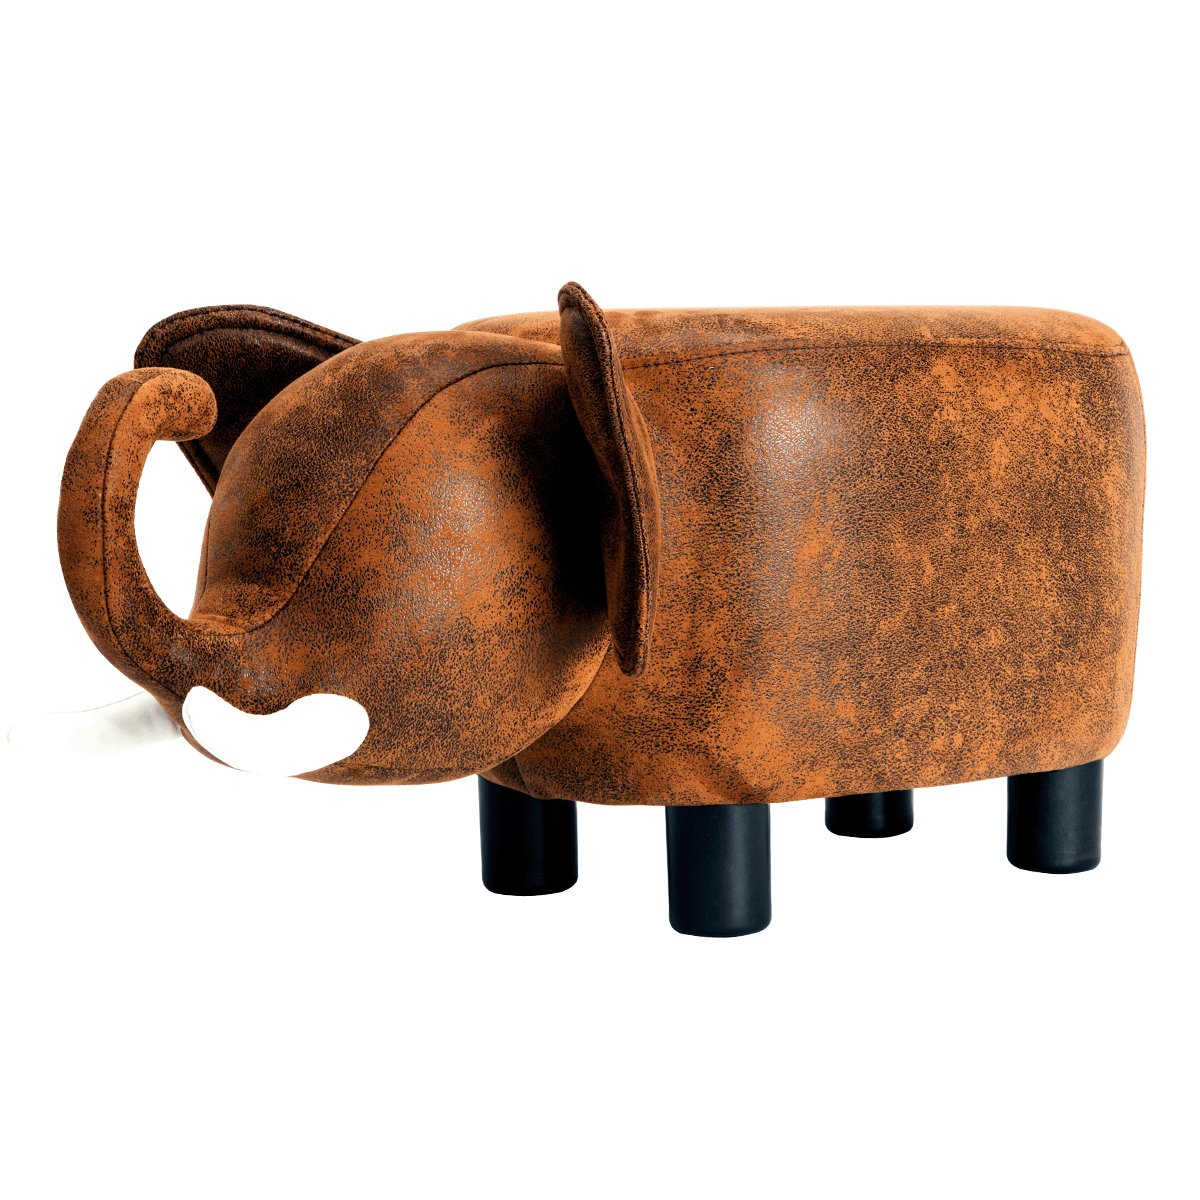 GUTEEN Upholstered Ride-on Toy Seat Ottoman Footrest Stool with Vivid Adorable Animal-Like Features(Brown elephant)